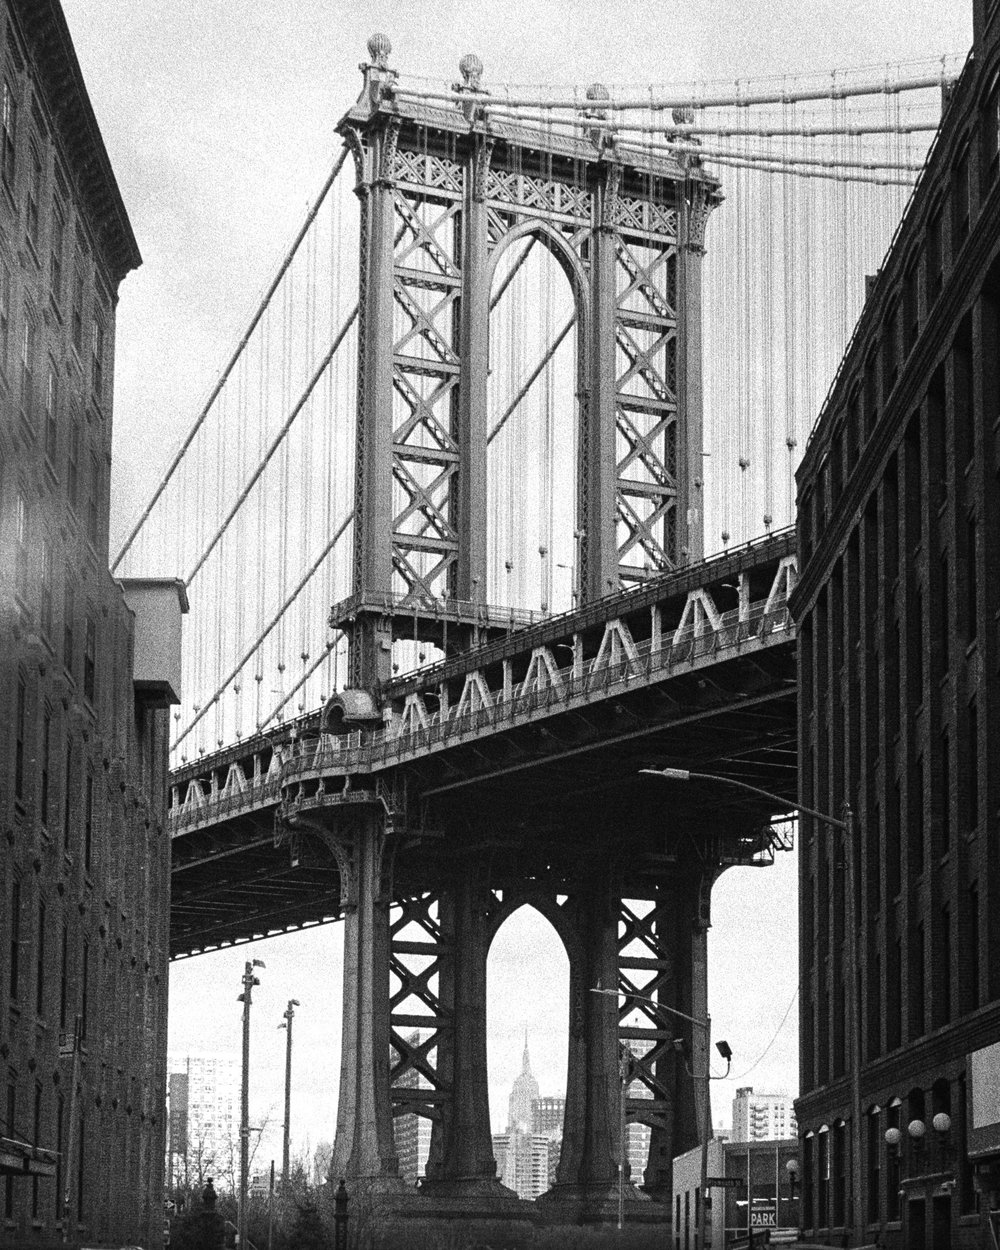 Manhattan  Bridge from Brooklyn, Dumbo, New York